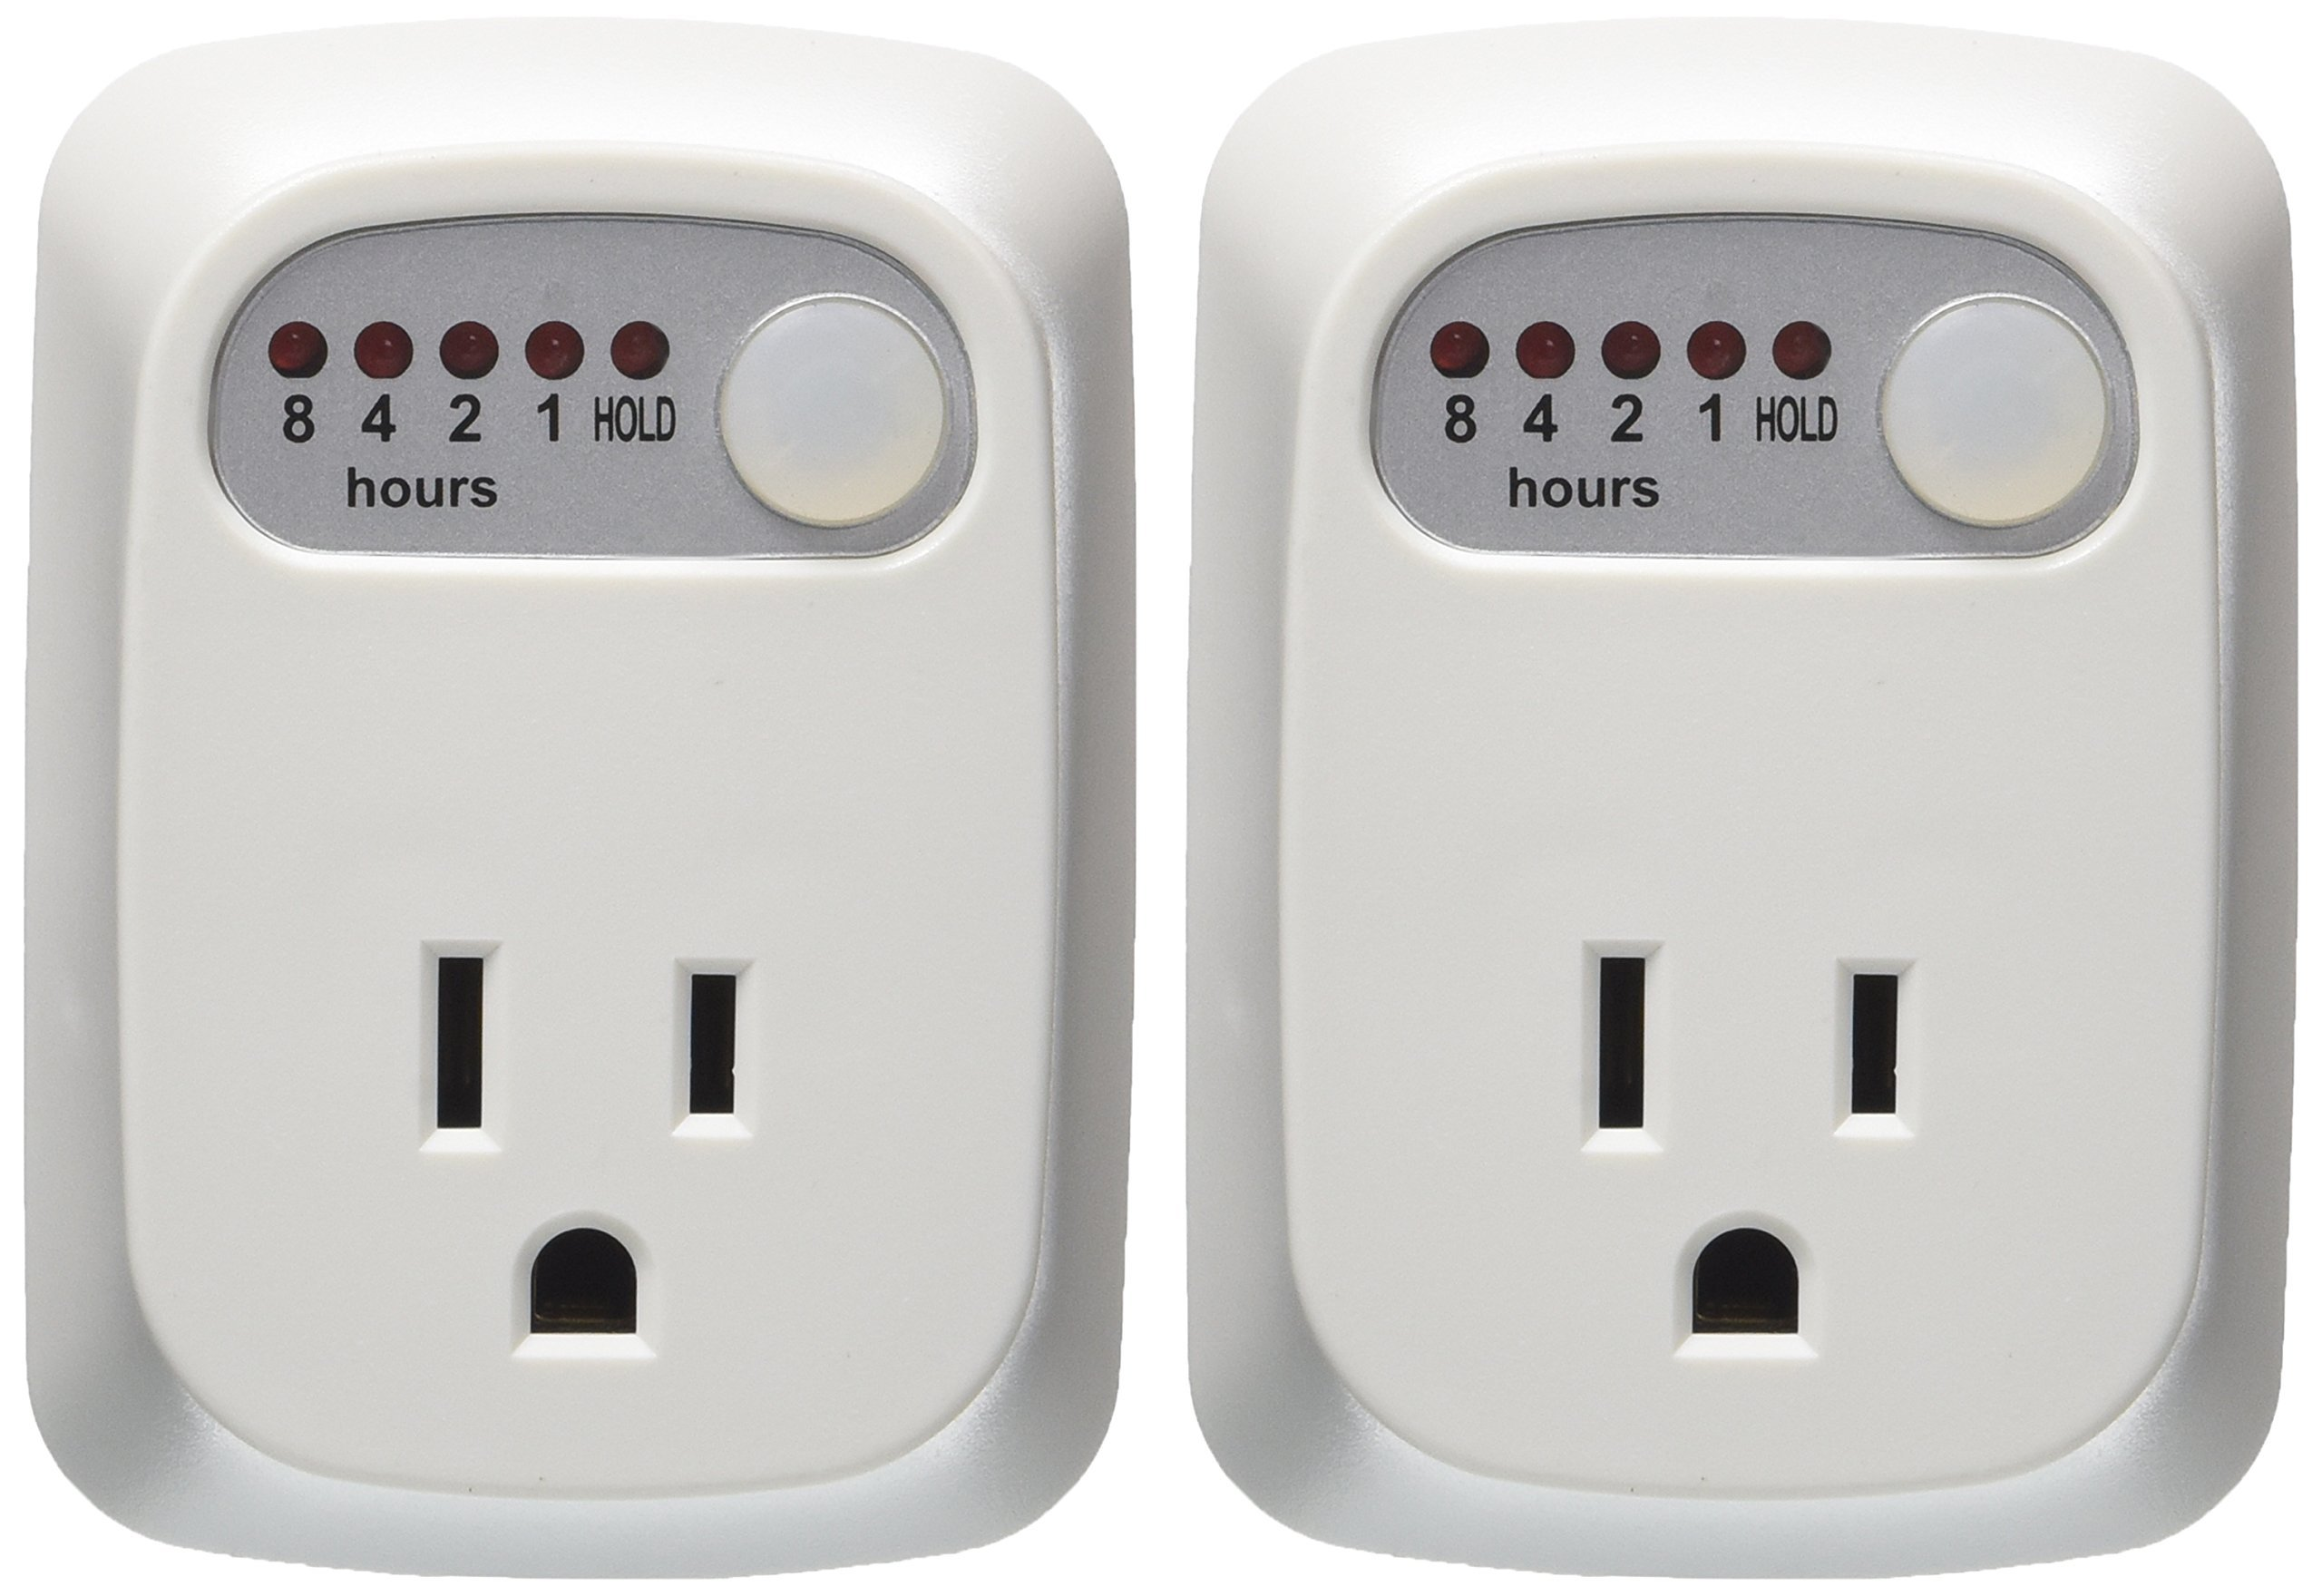 Simple Touch C30004 The Original Auto Shut-Off Safety Outlet, Multi Setting, 2 Count